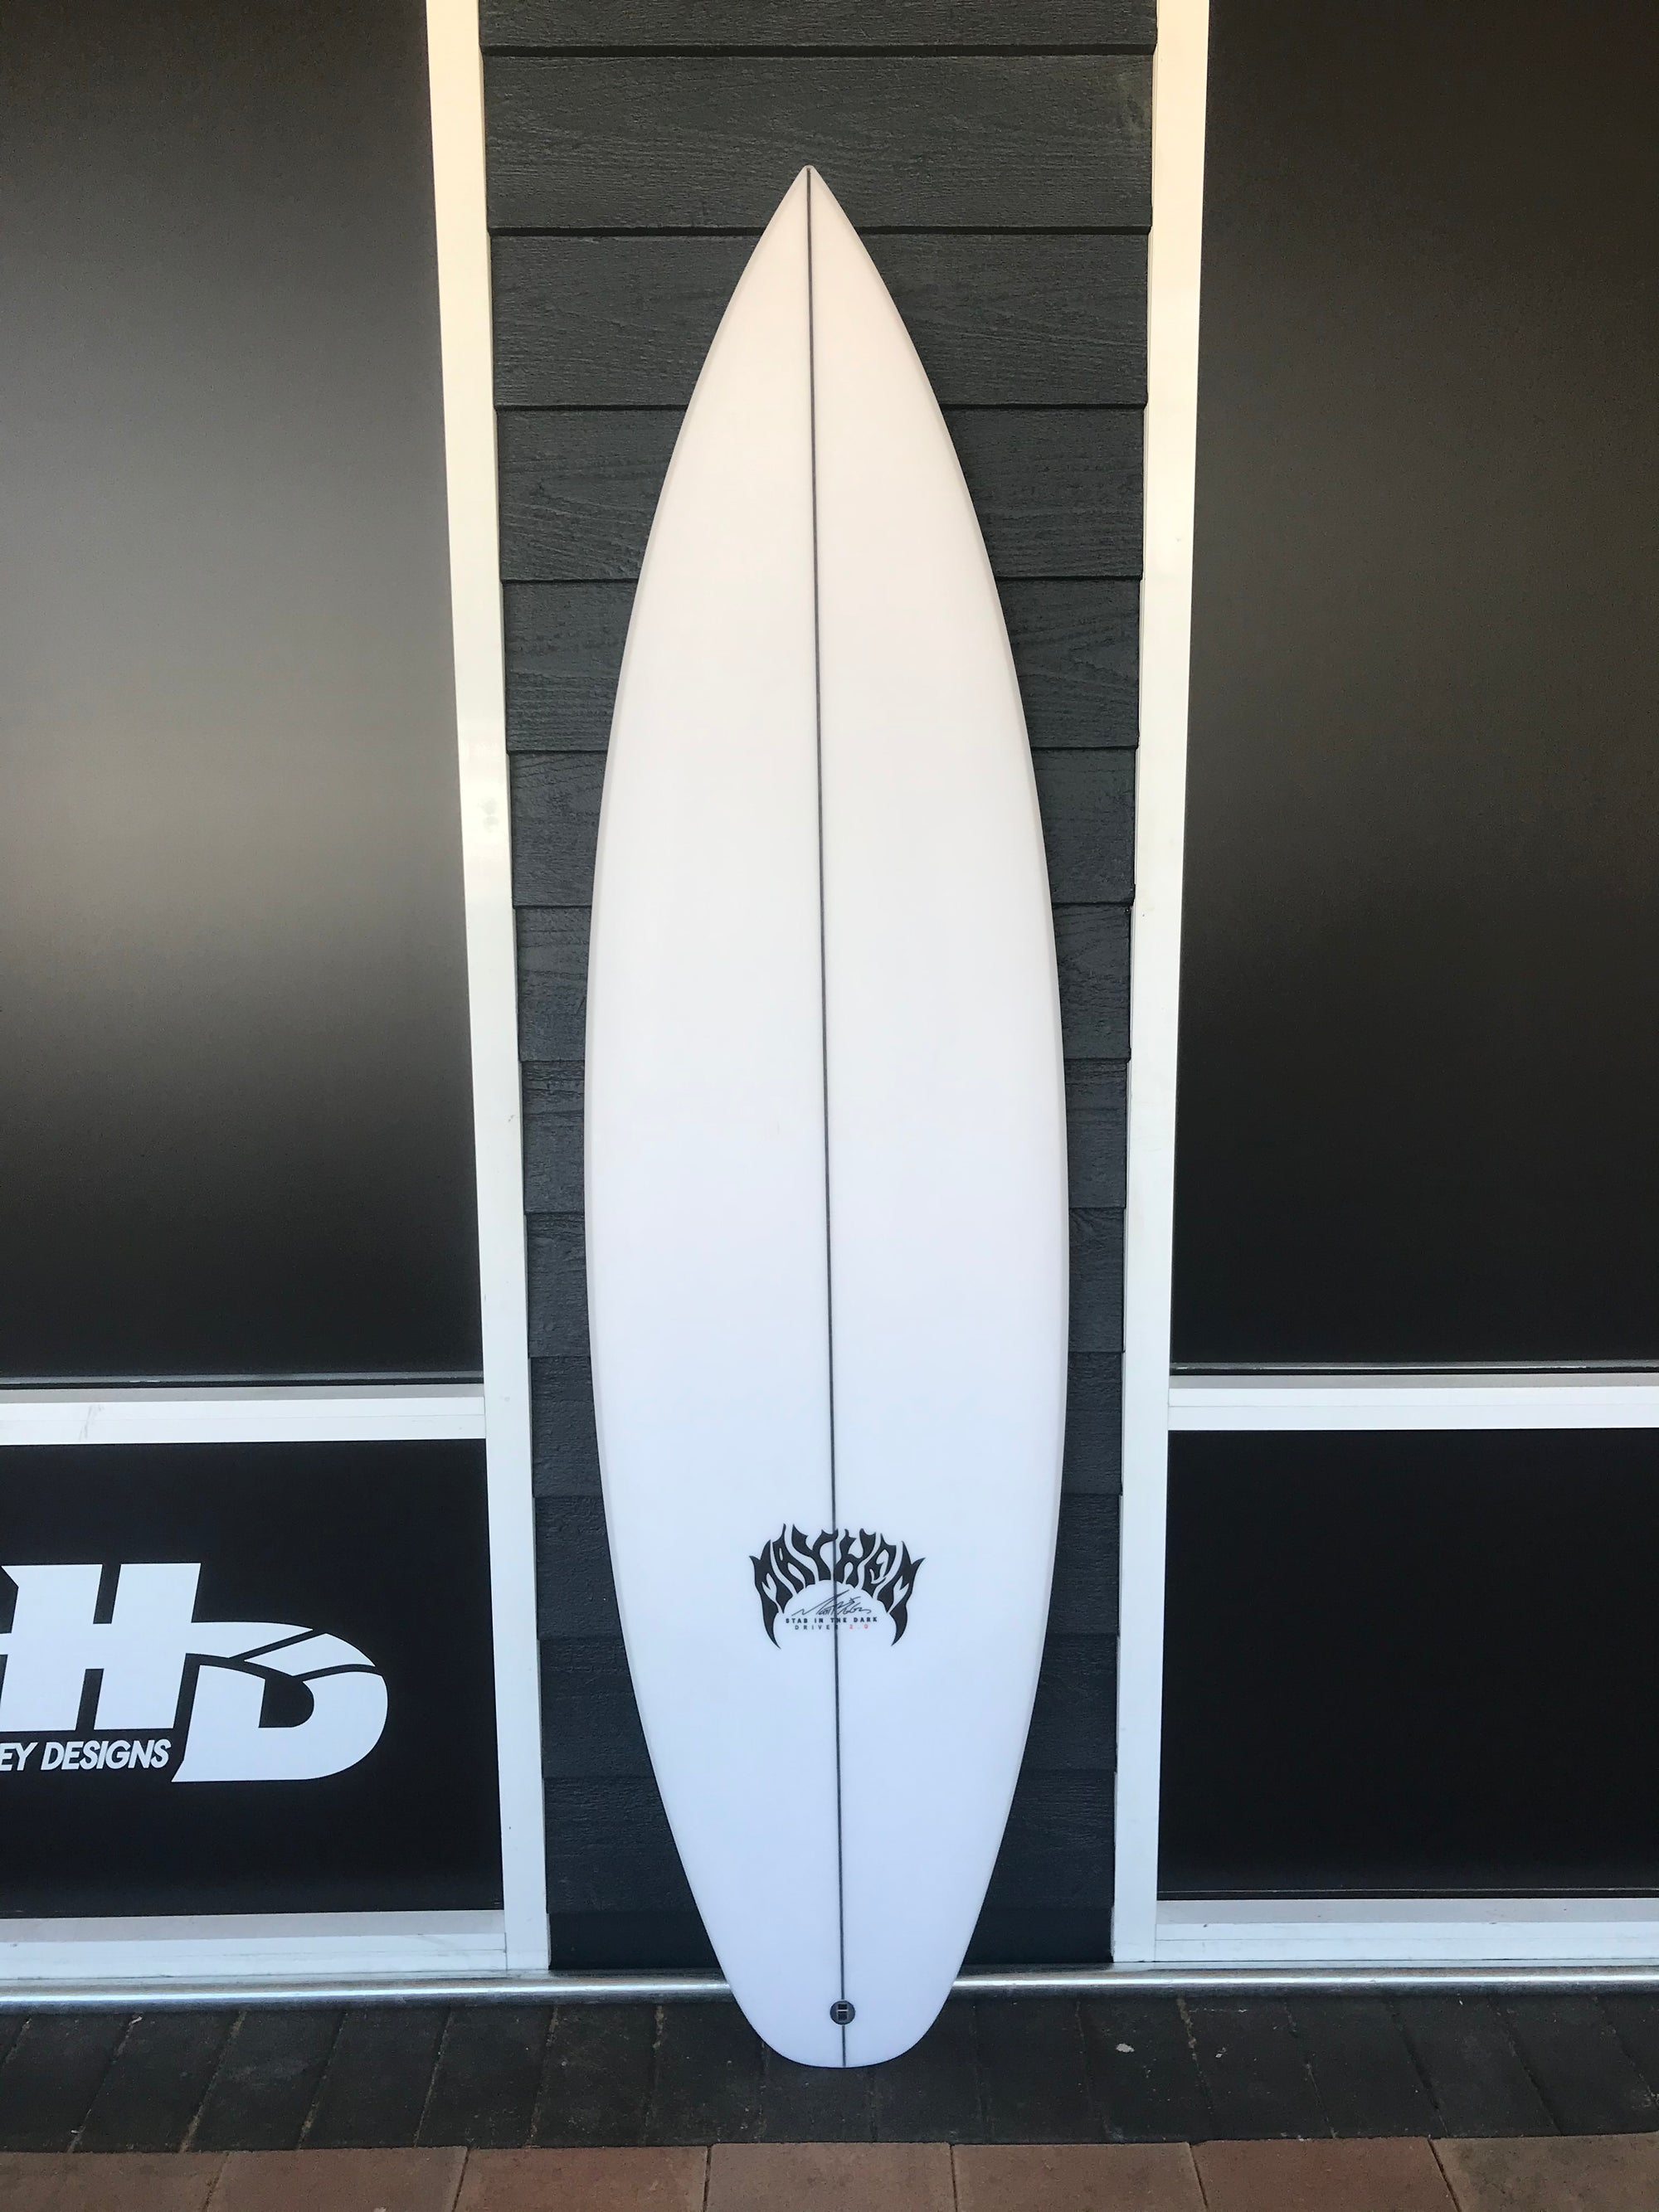 Stab In The Dark All Stars DRIVER 2.0 - Board Store Lostsurfboard